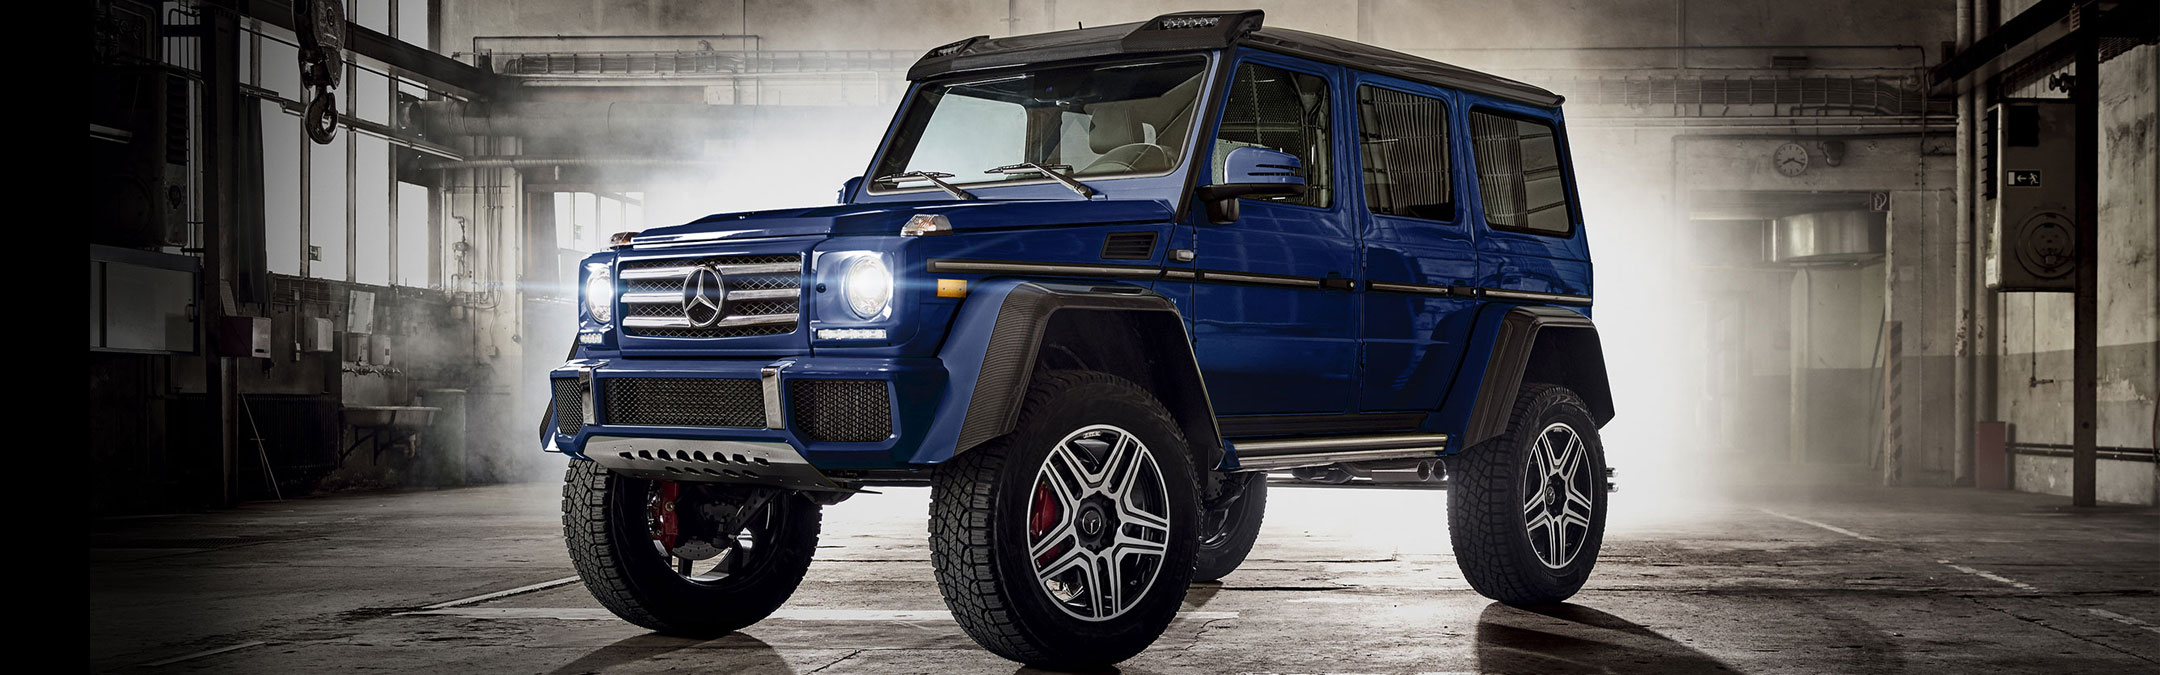 jeeps men s jeep google pin pinterest cars search mercedes ride benz and